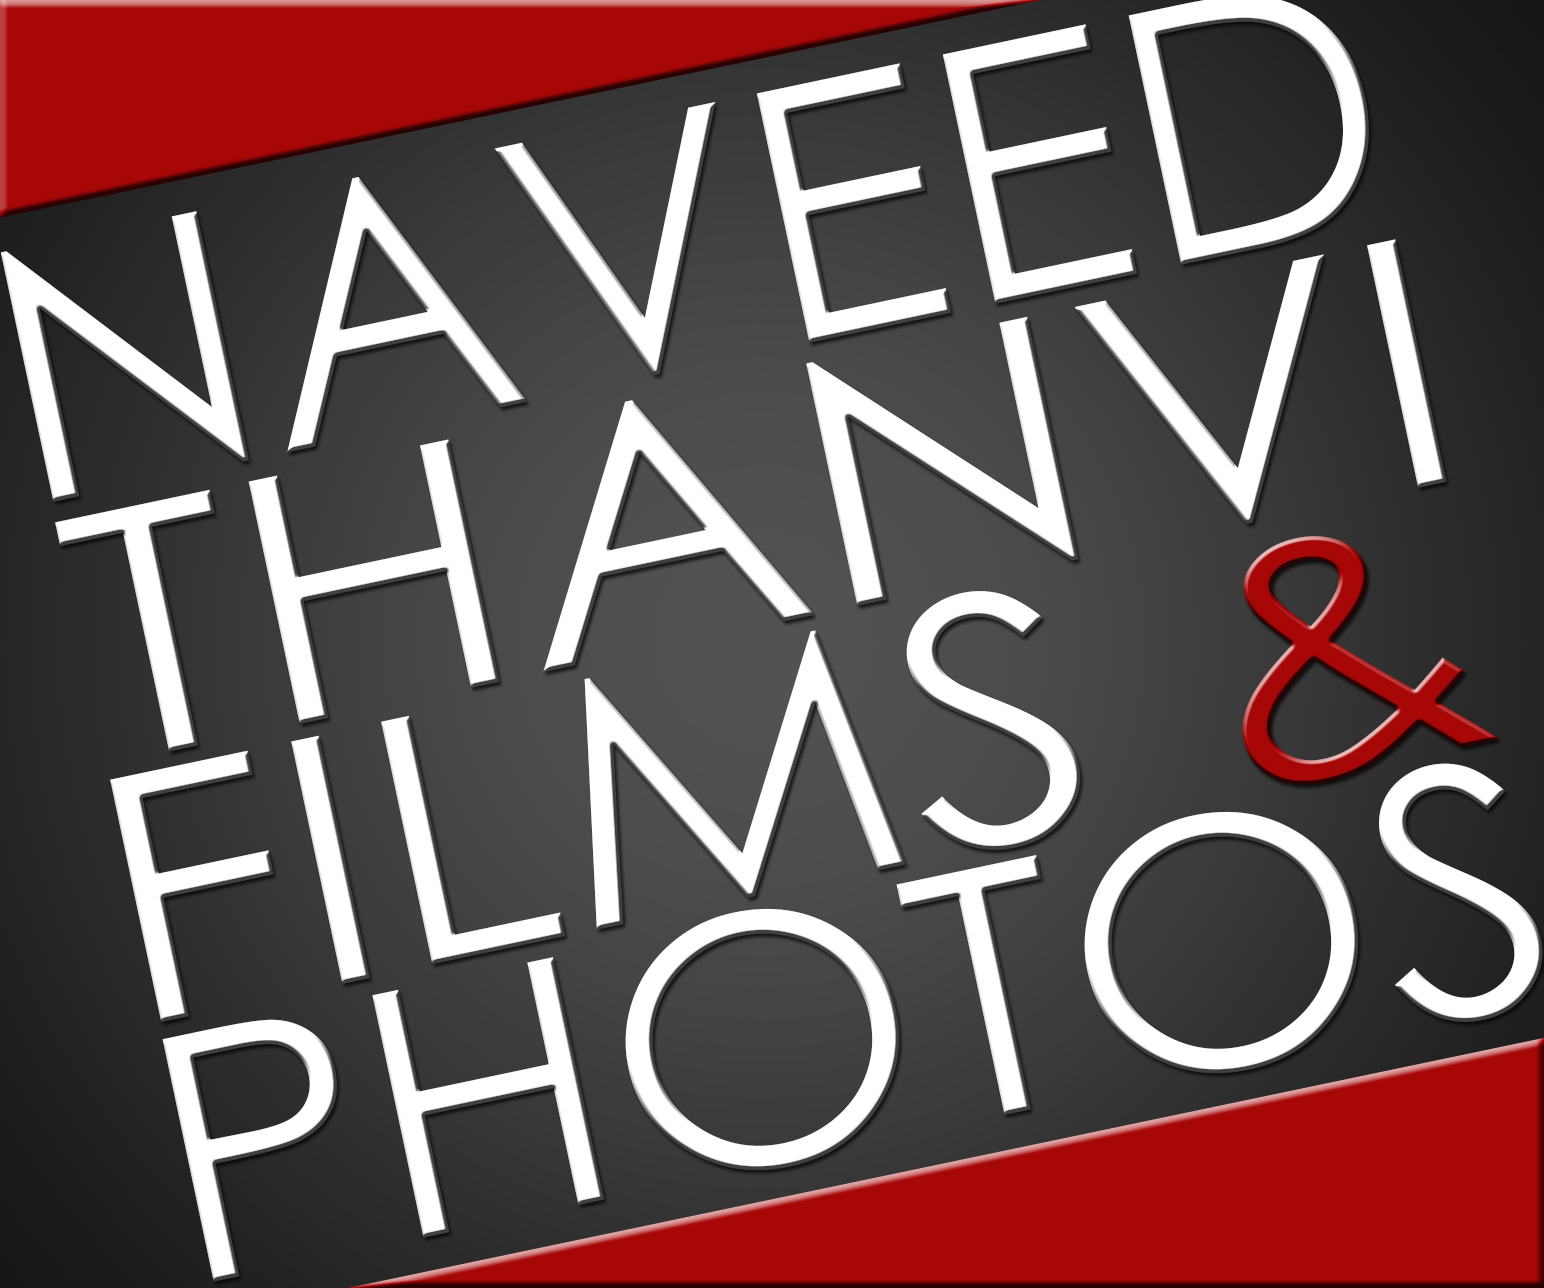 Naveed Thanvi Films & Photos